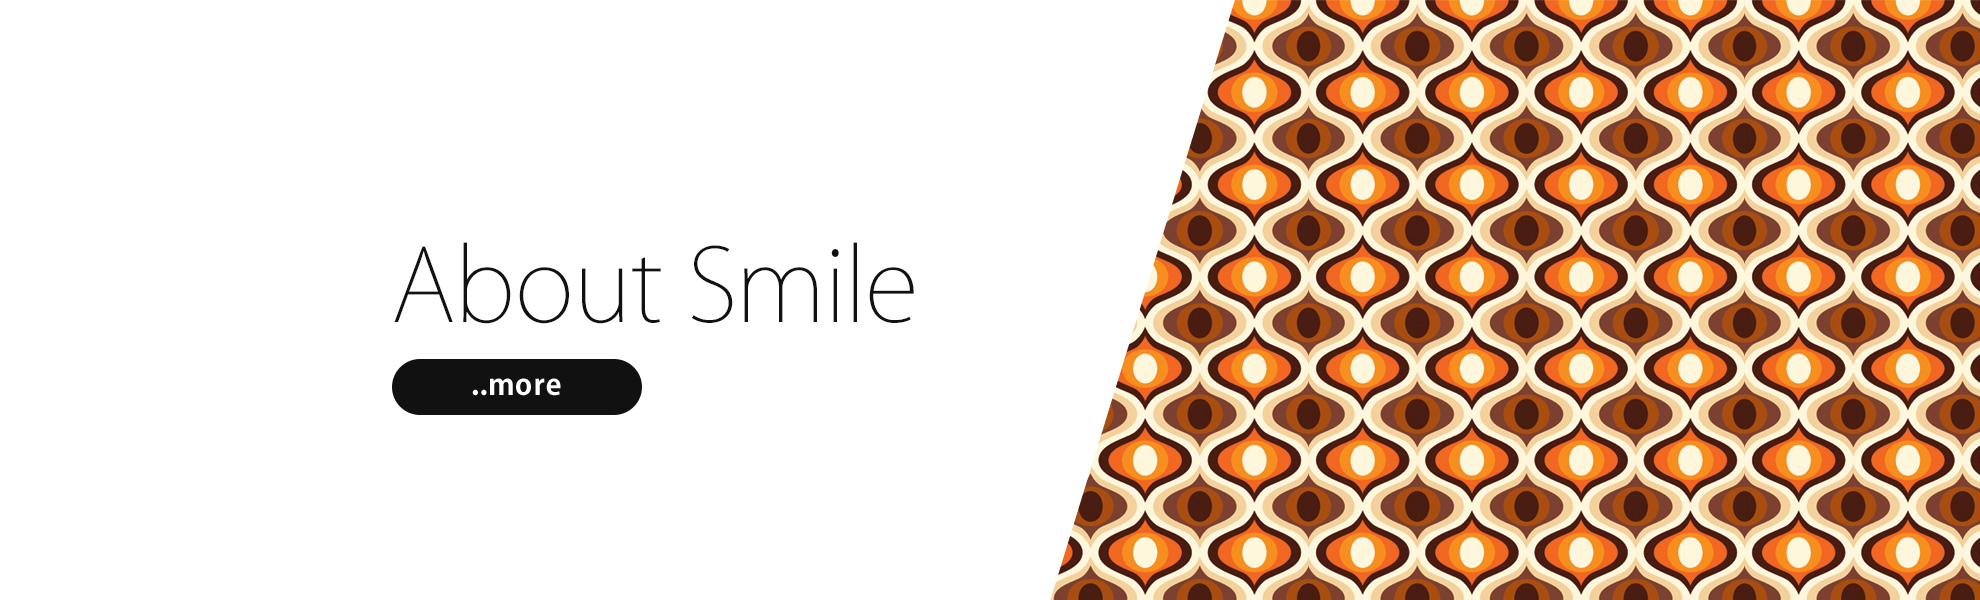 About Smile